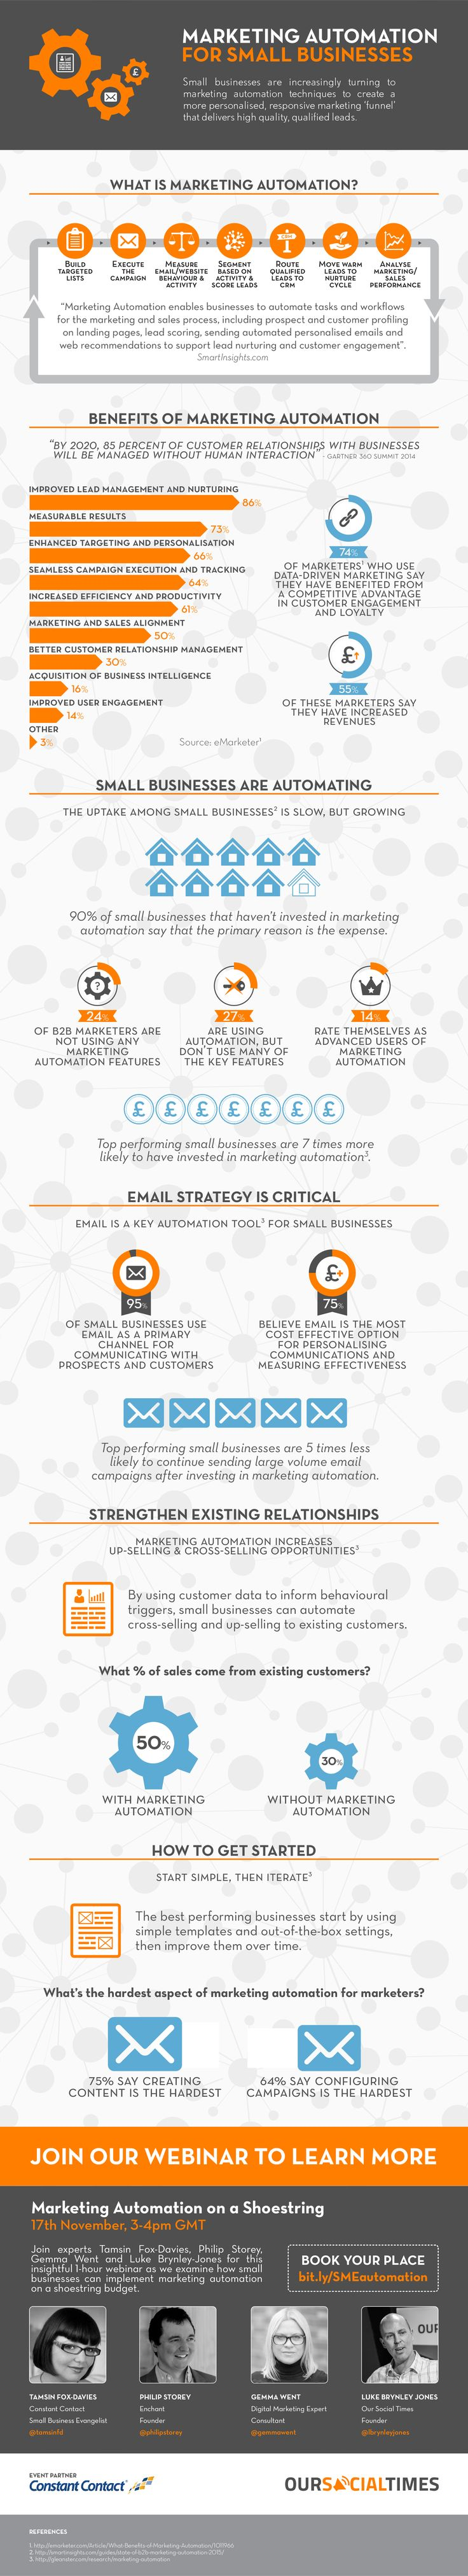 Marketing Automation for Small Businesses #Infographic #Business #Marketing